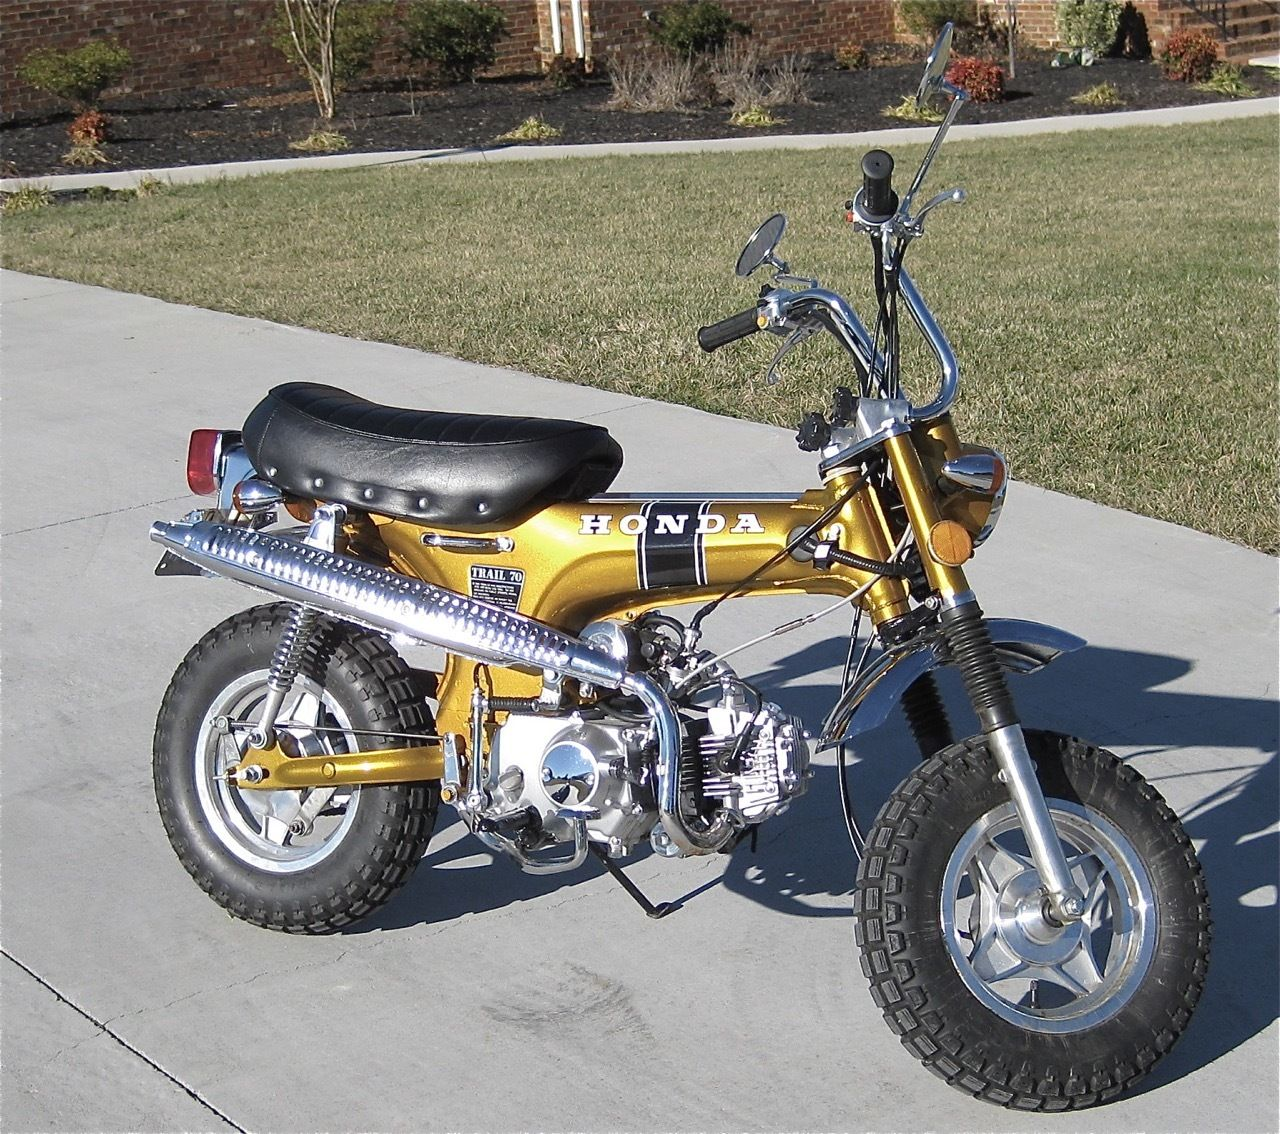 1971 Honda Ct70 Gold 4 Speed Manual With Clear Title 110 Engine 1970 Battery Upgrade Fast